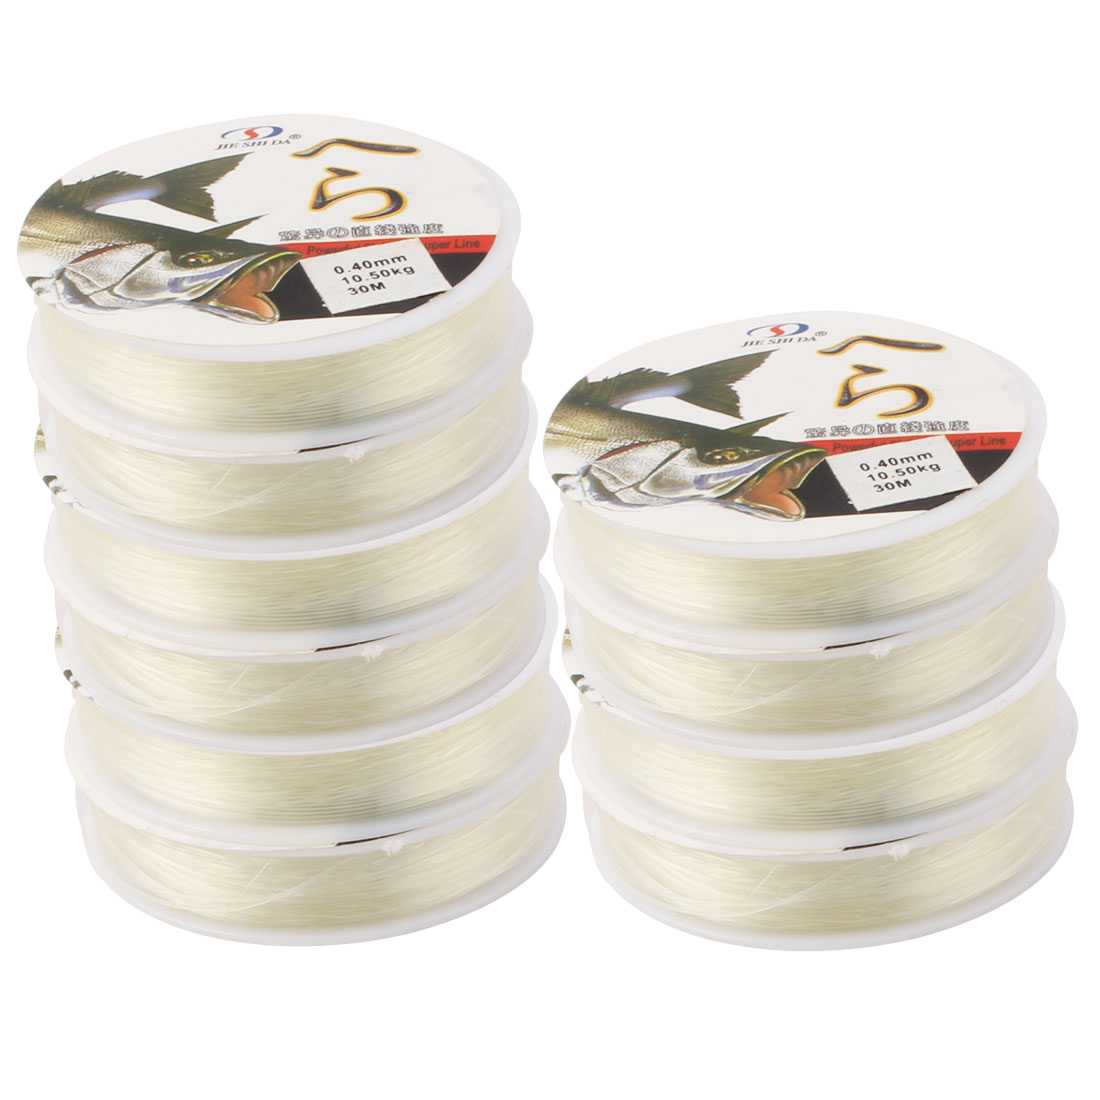 10pcs x Clear Monofilament Fishing Line 10.5Kg 30M 0.40mm Dia